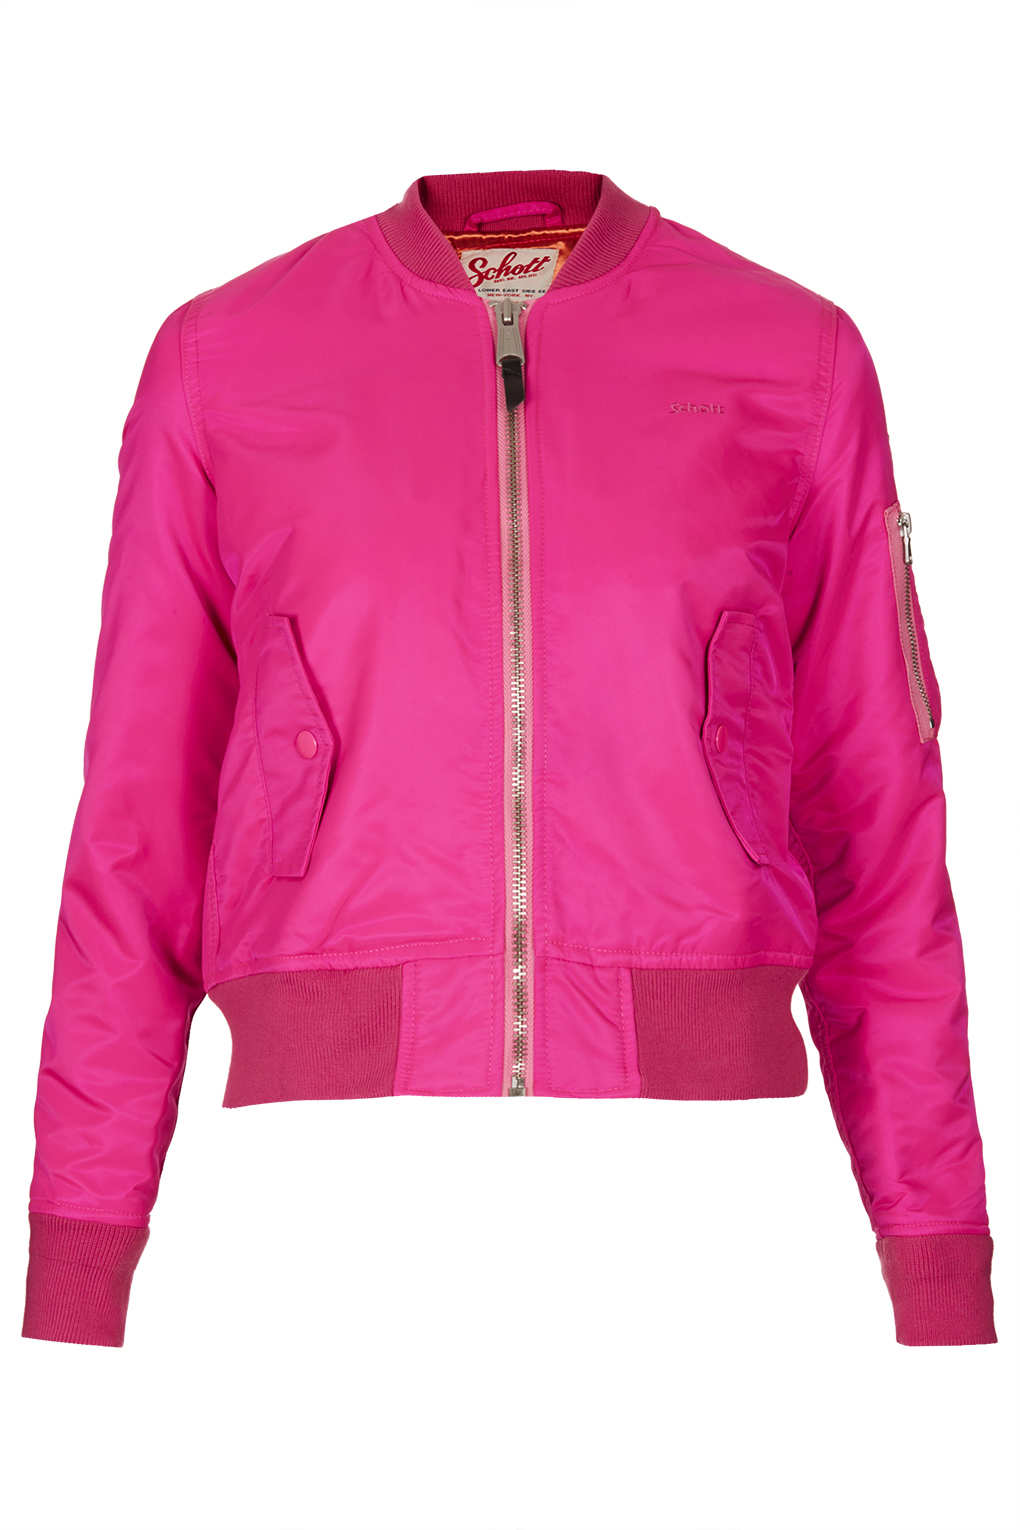 Topshop Bomber Jacket By Schott Nyc in Pink